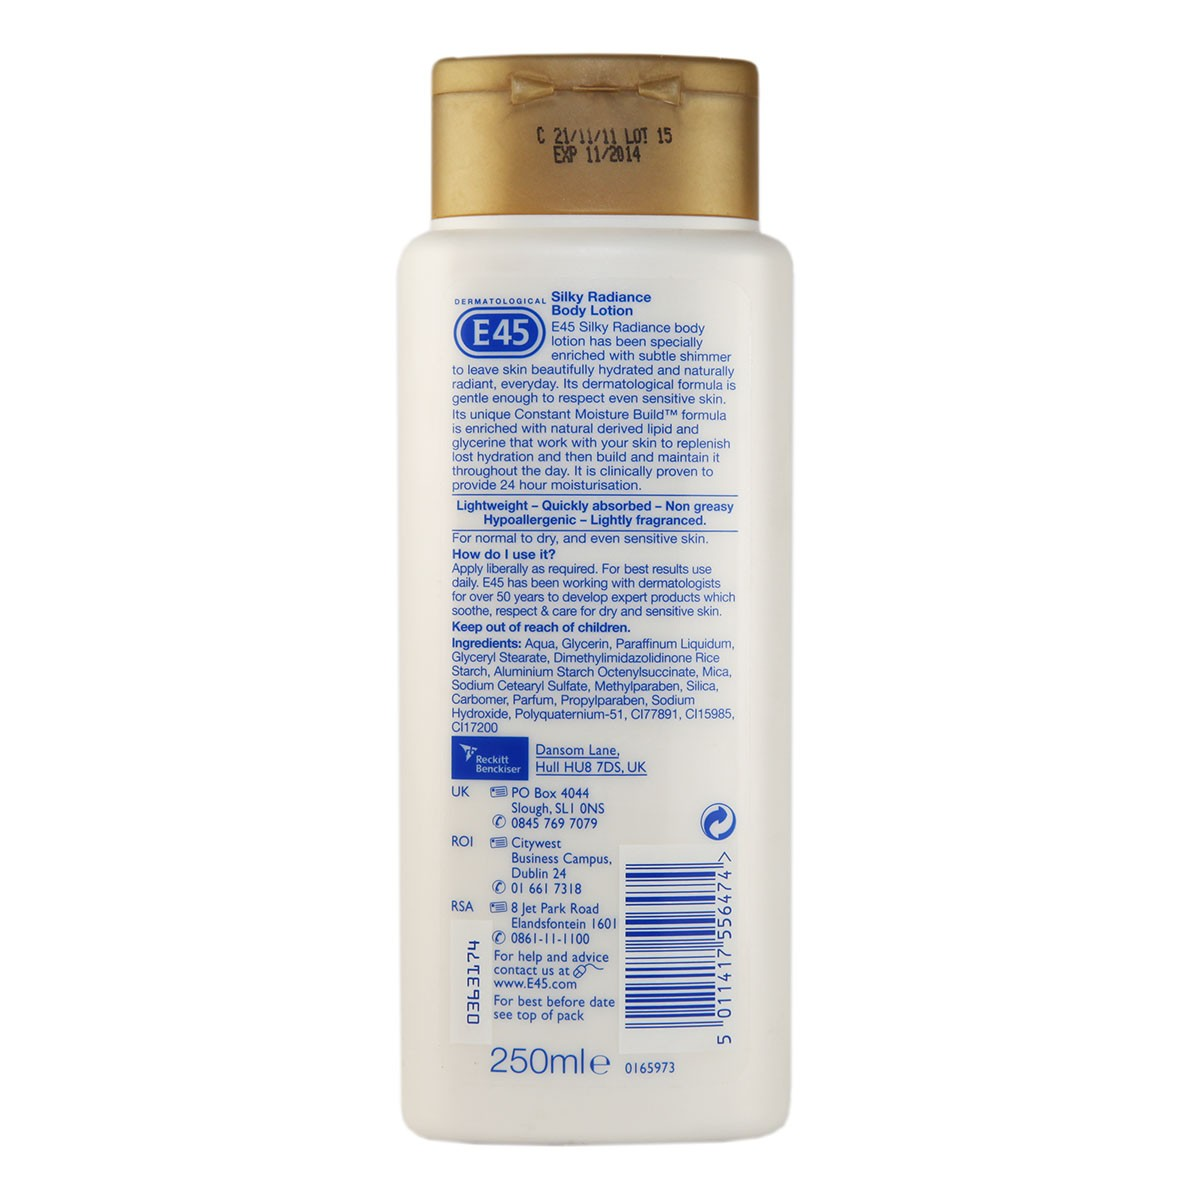 E45 Silky Radiance Body Lotion - Normal to Dry Skin